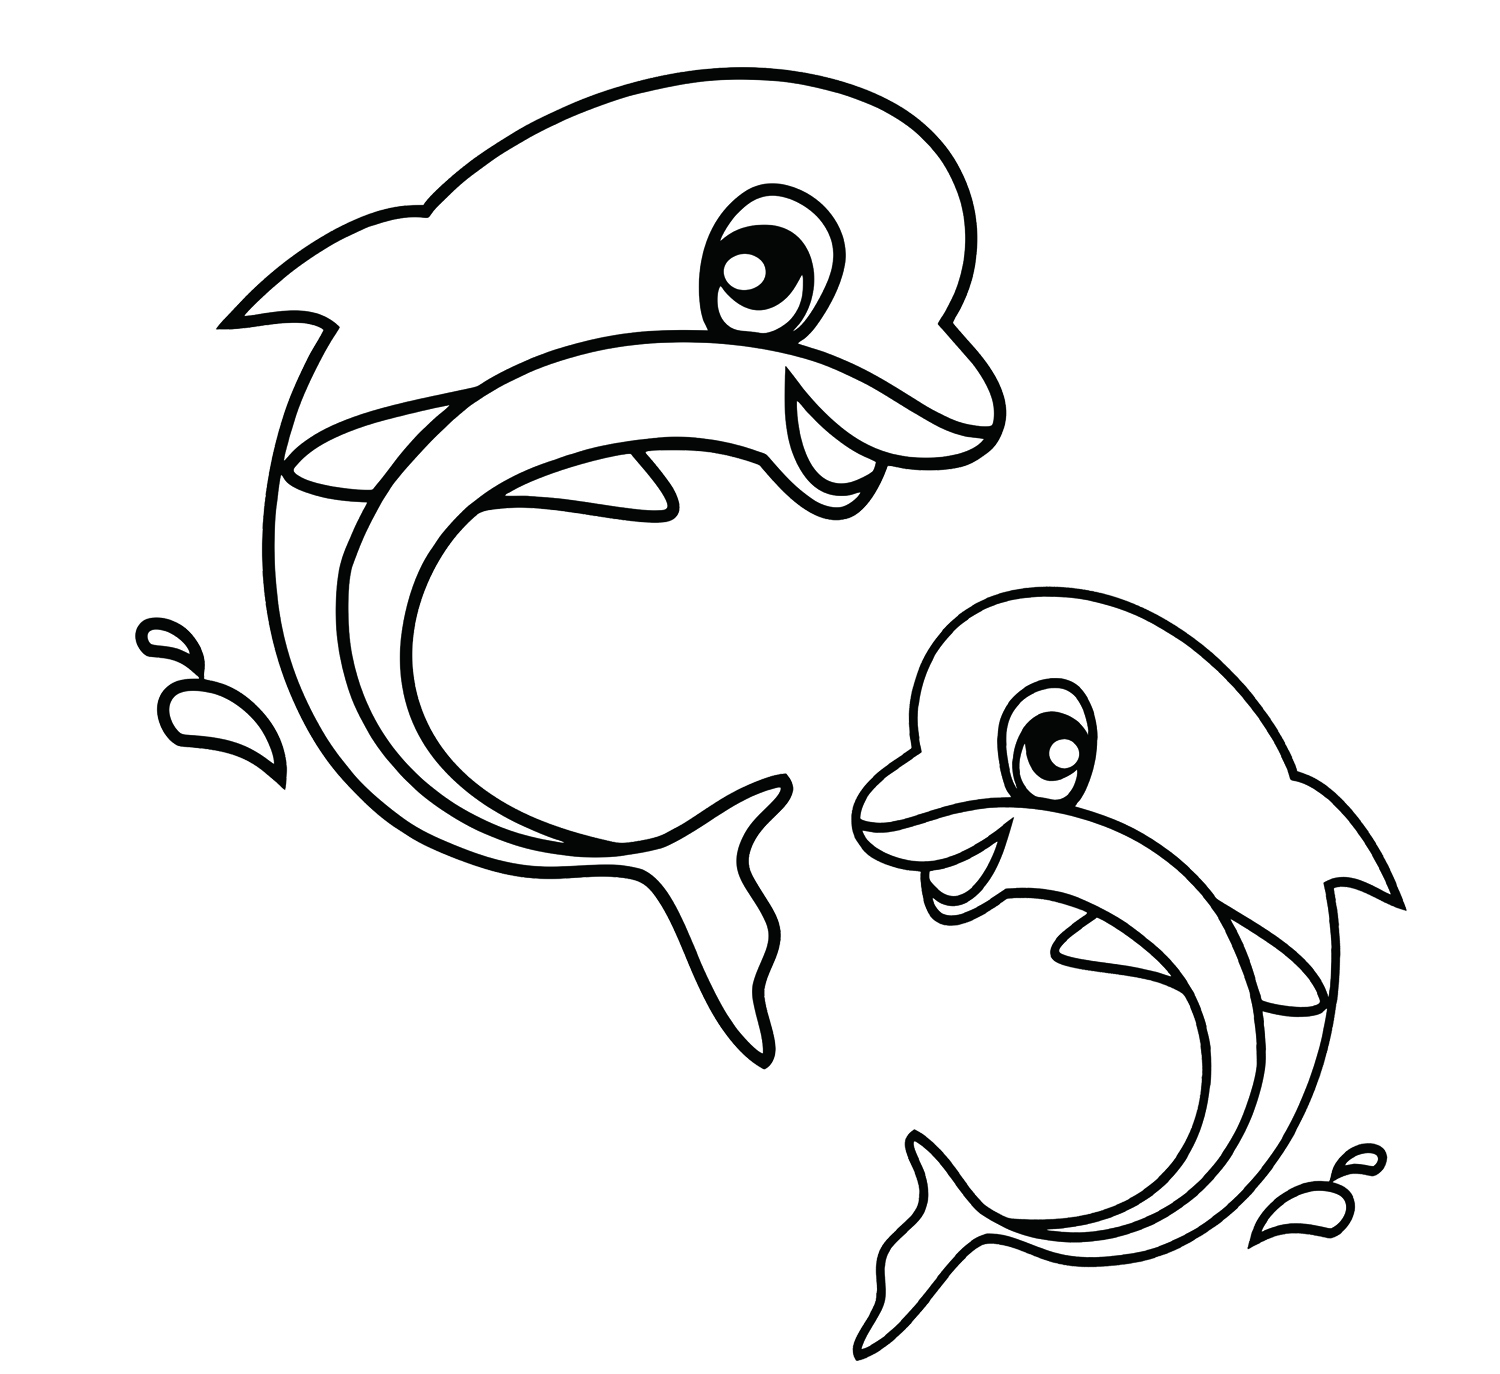 Easy Coloring Pages - Dolphin